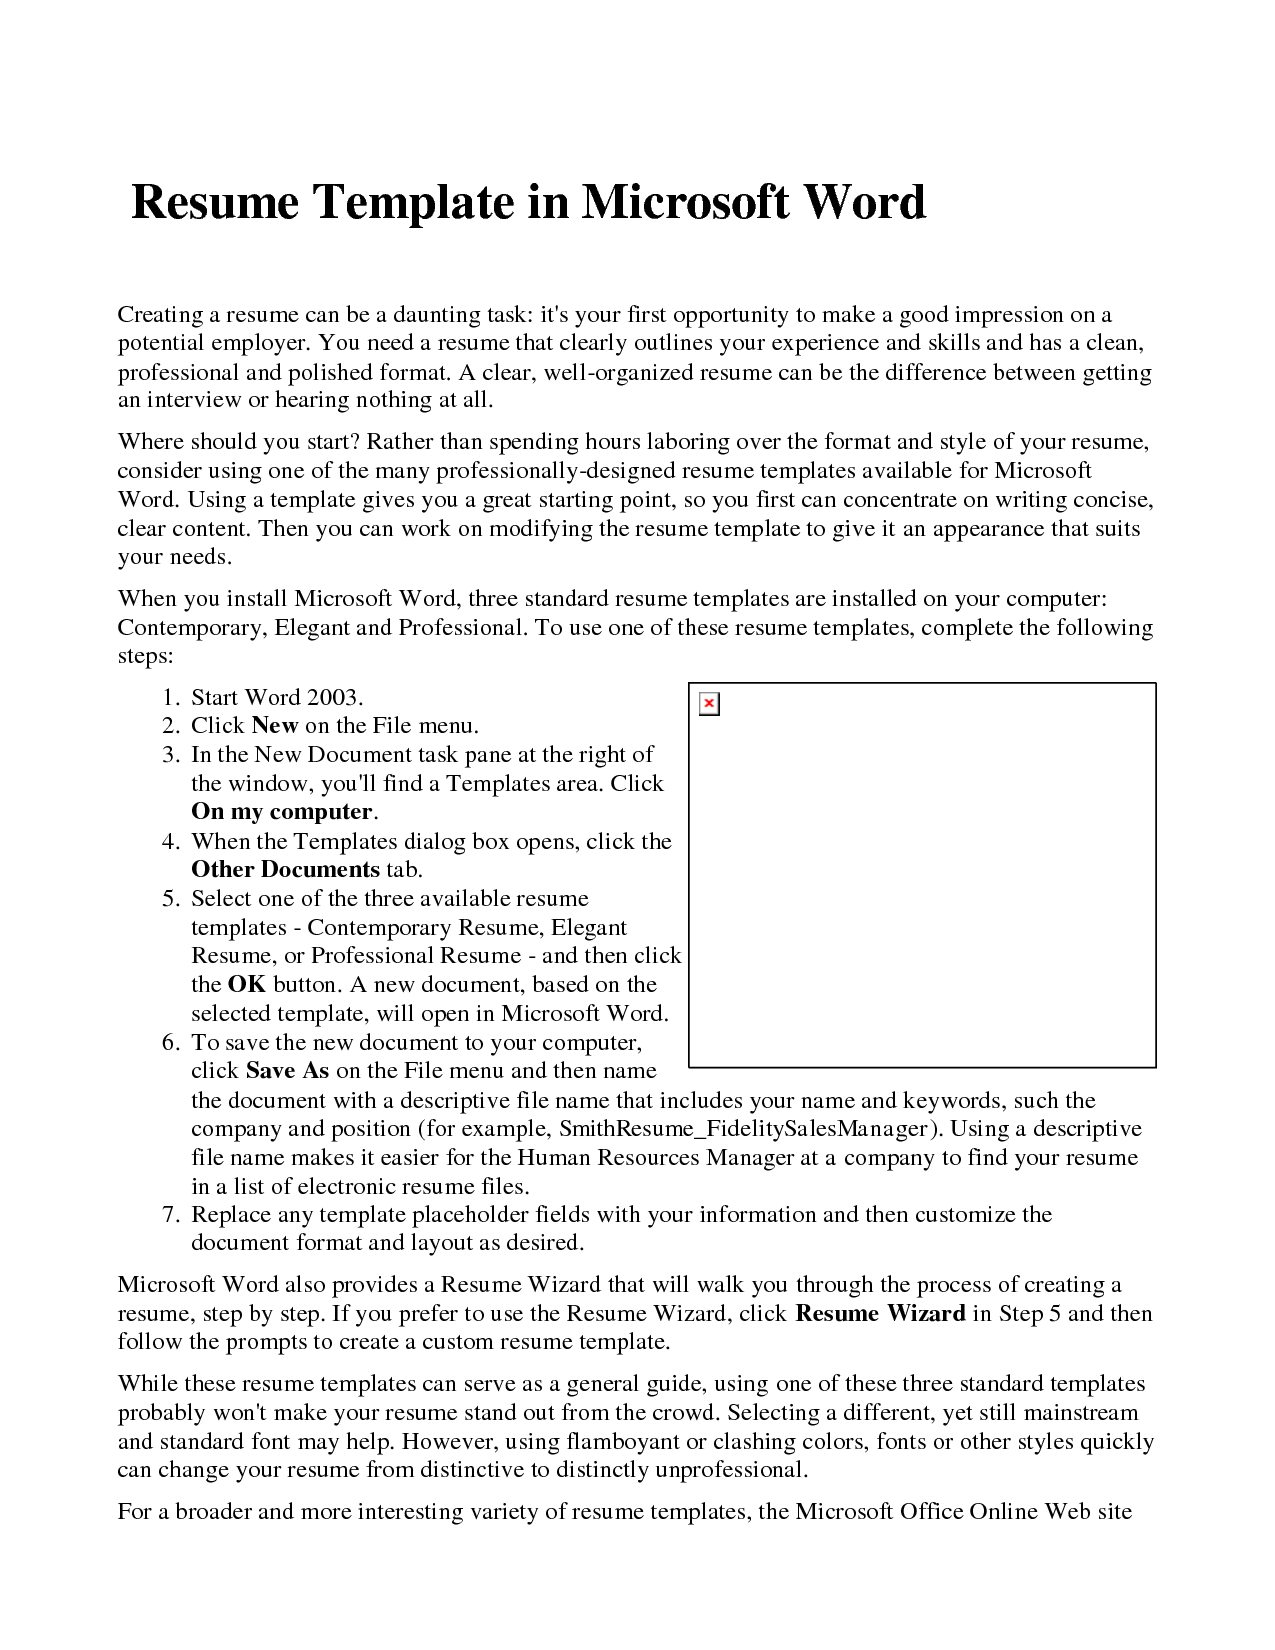 Free Resume Templates Microsoft Word 2010 Resume Templates Microsoft Word  Httpwwwresumecareer